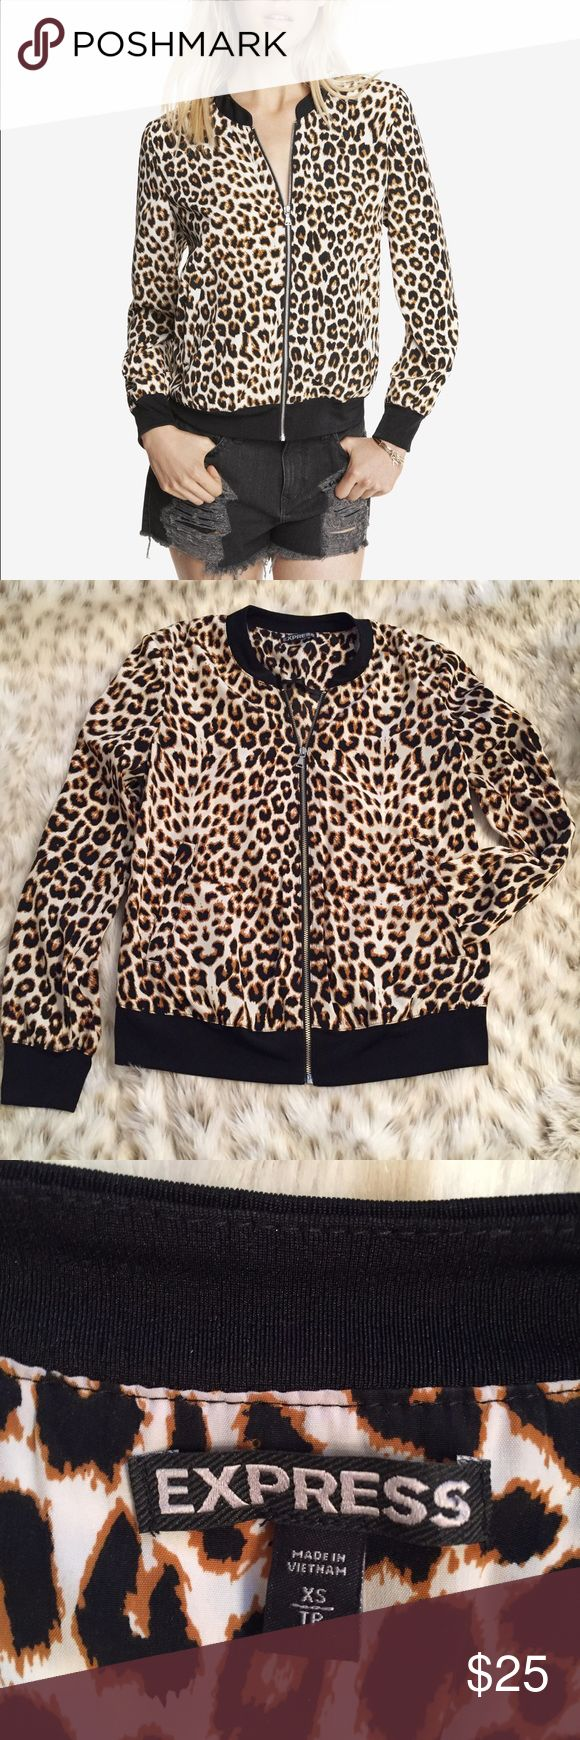 Express Leopard Bomber Jacket Express cheetah / leopard print lightweight bomber jacket full zip! No flaws. Size XS. Also could fit size small. So cute.perfect for this coming spring Express Jackets & Coats